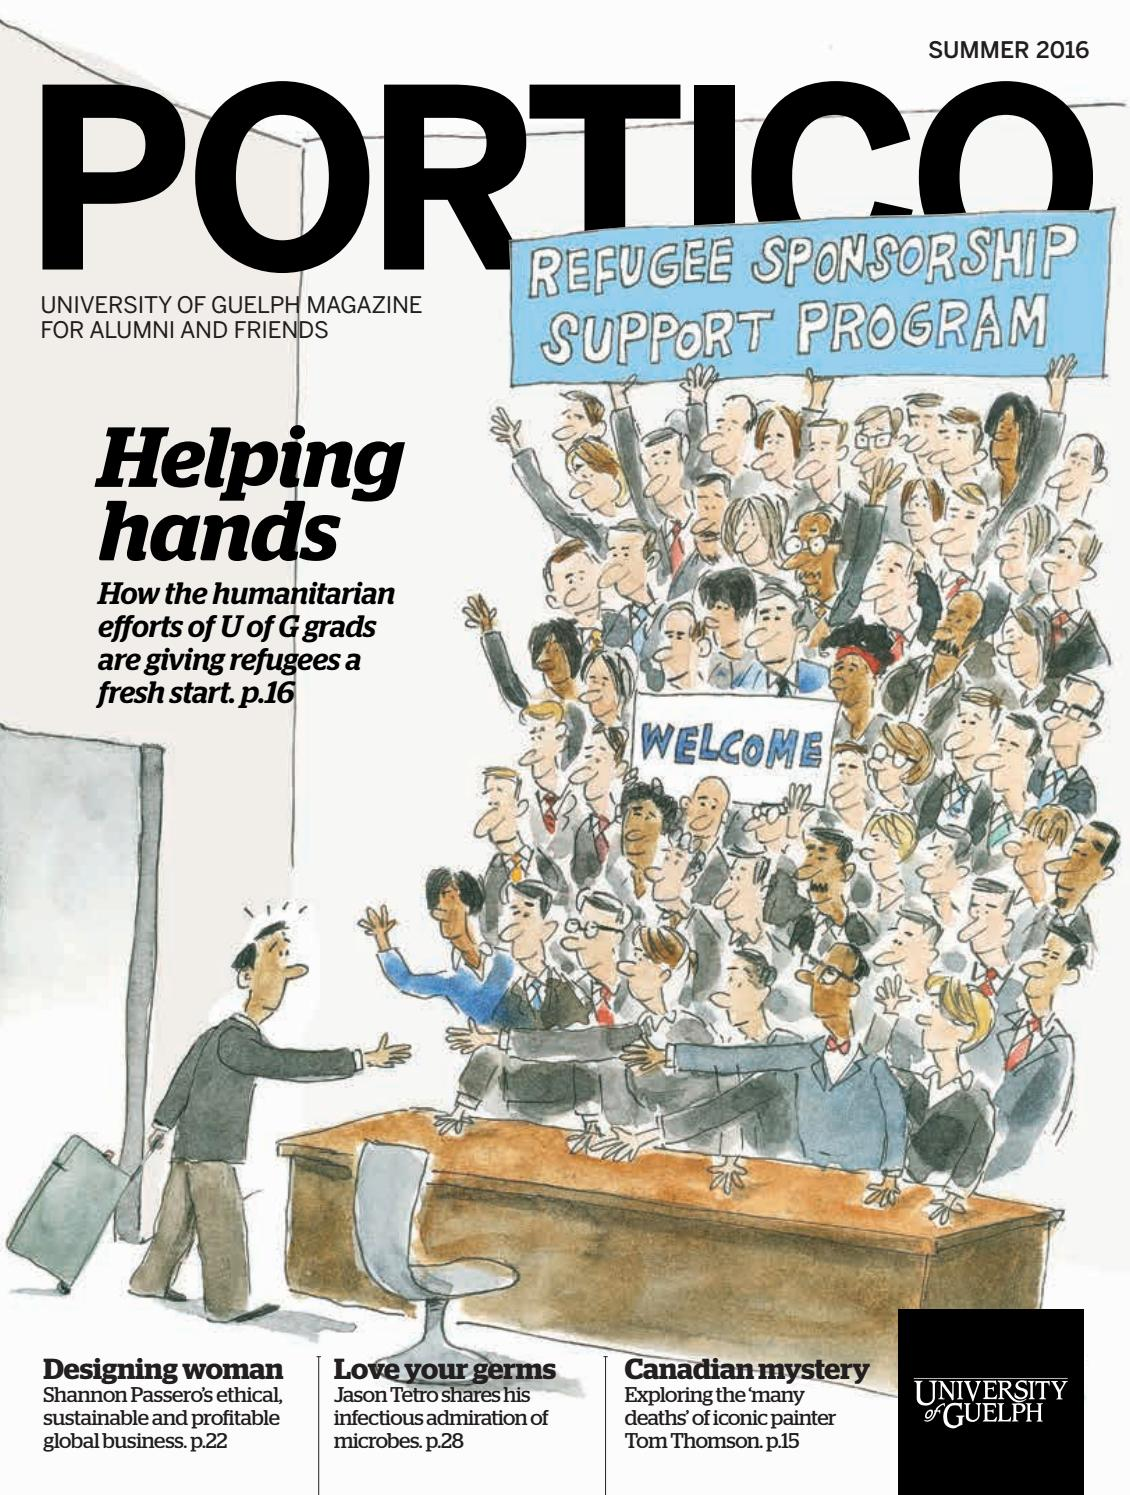 Portico Magazine, Summer 2016 by University of Guelph - issuu